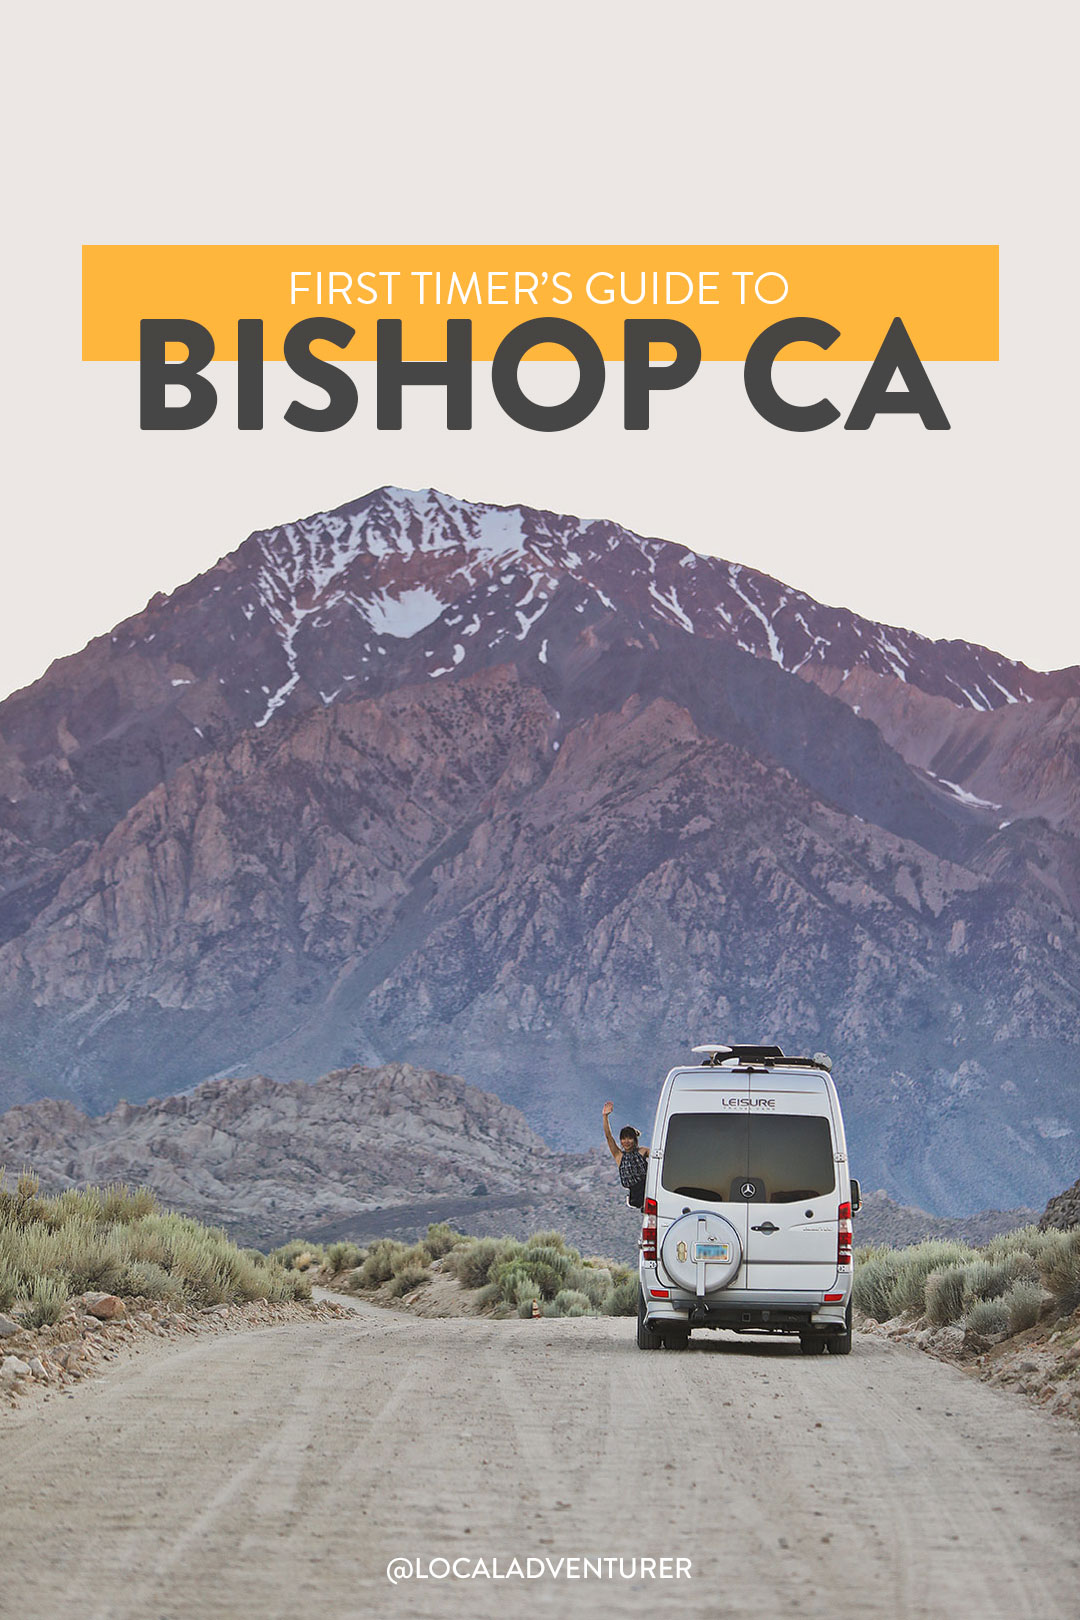 15 Incredible Things to Do in Bishop CA